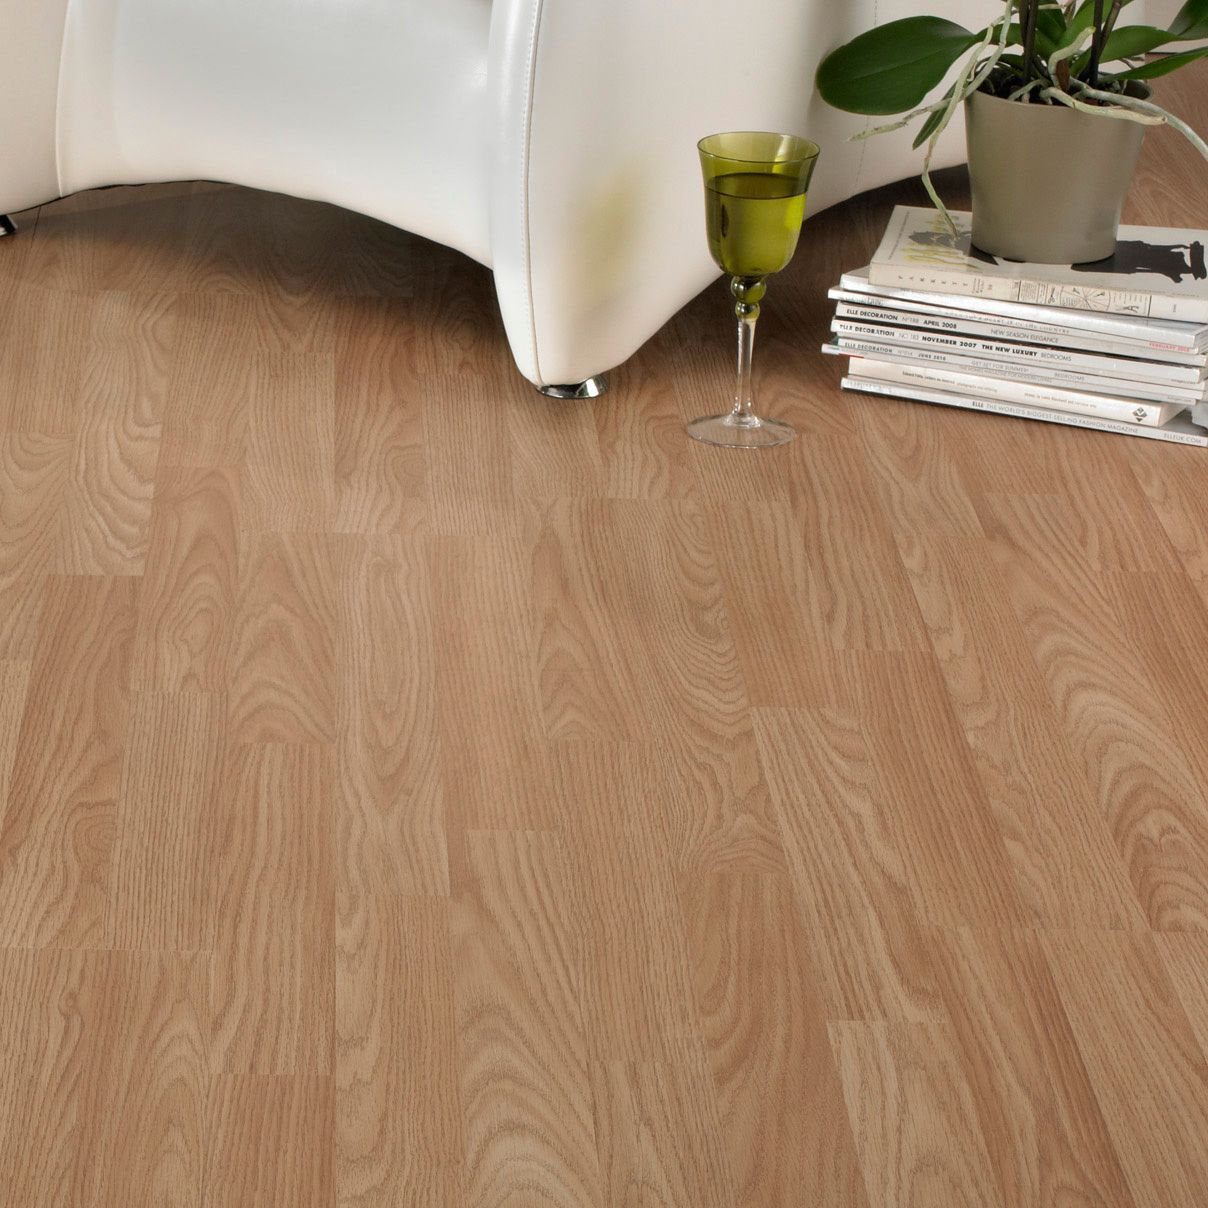 Kitchen Floor Tiles Bq Oak Effect 3 Strip Laminate Flooring 3 Ma2 Pack Departments Diy